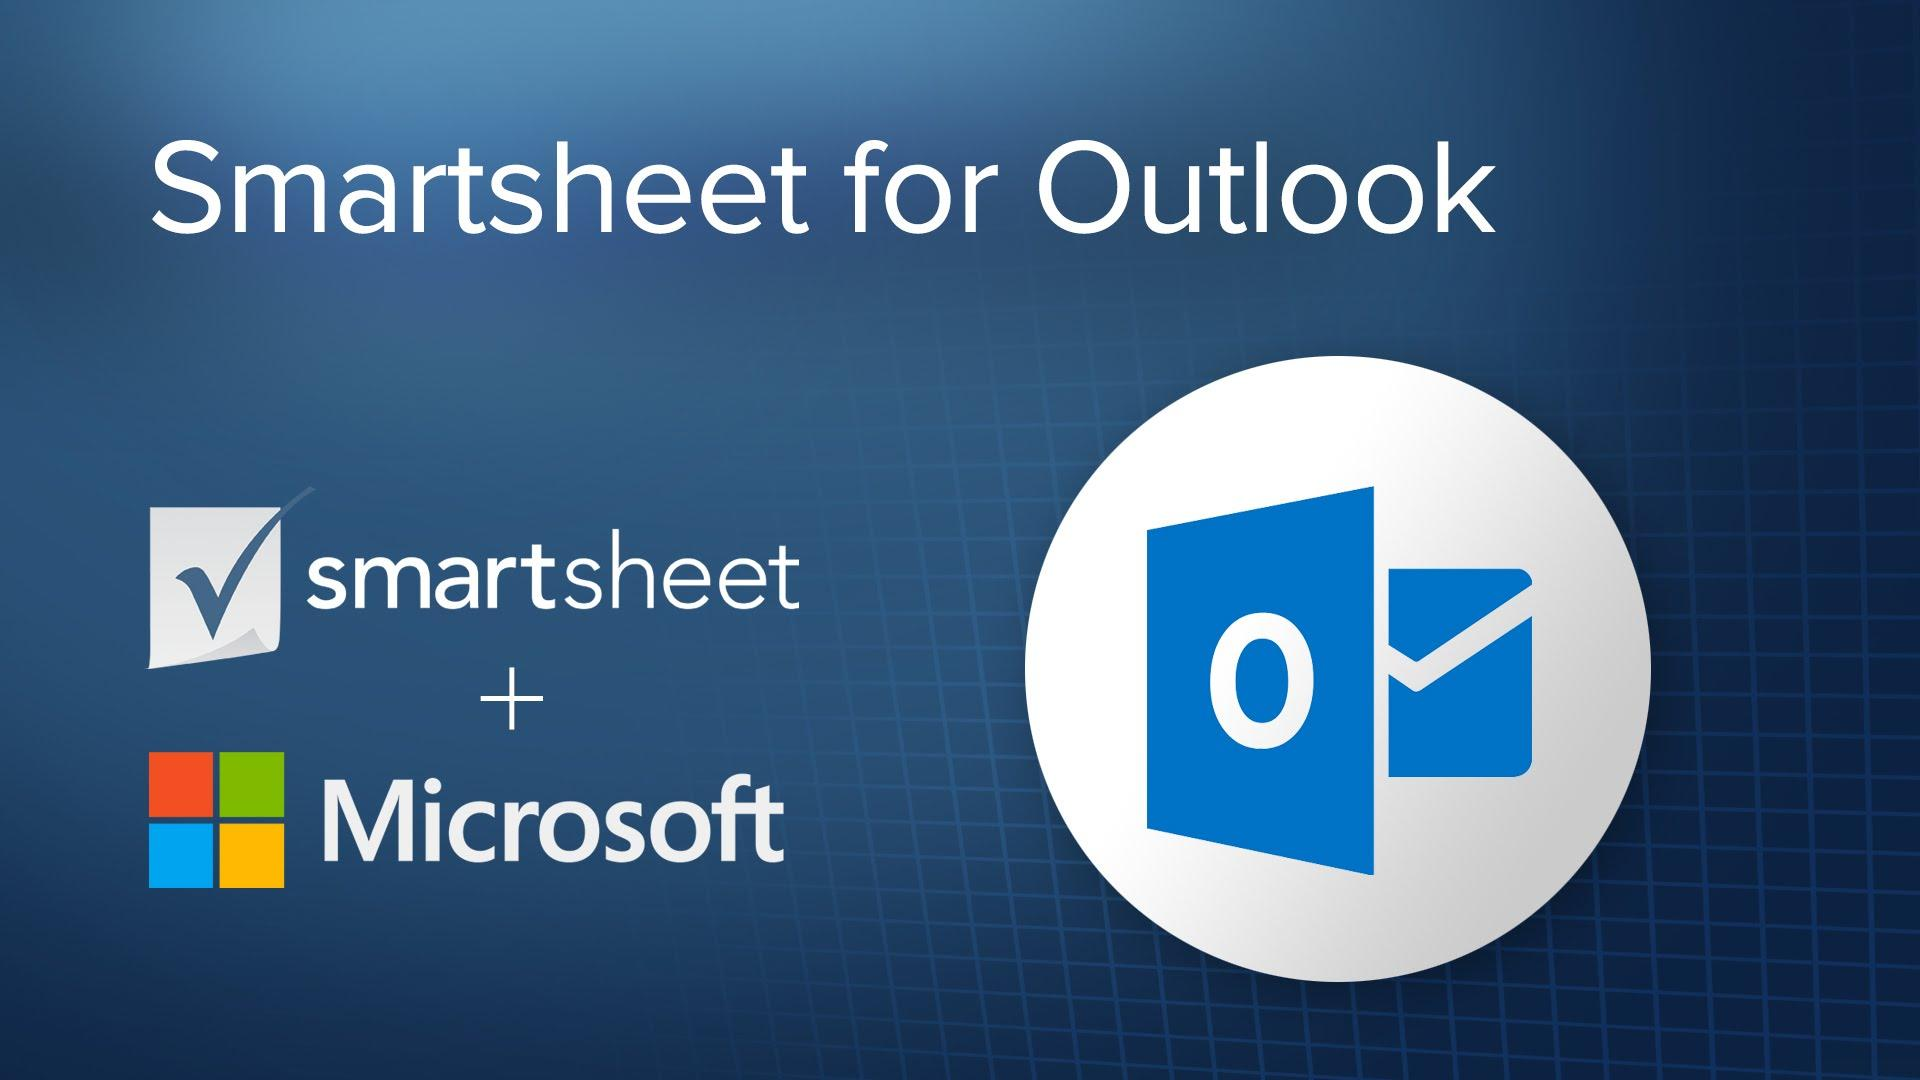 Smartsheet for Outlook